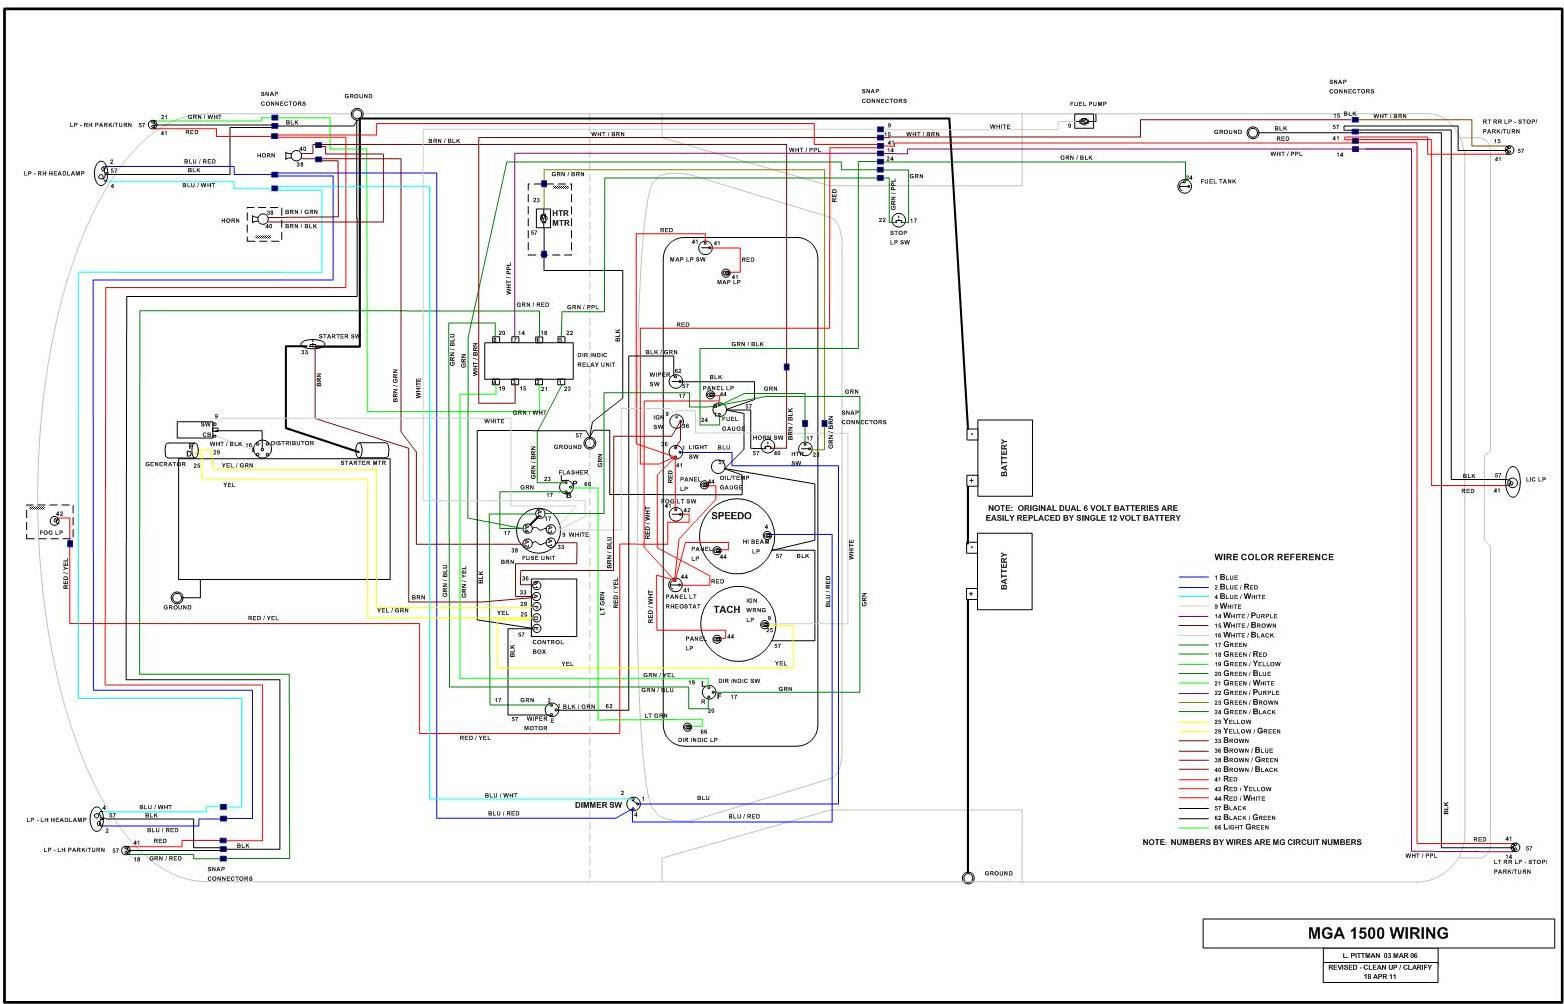 Diagram Moss Motors Mga Wiring Diagram Full Version Hd Quality Wiring Diagram Sgdiagram18 Japanfest It